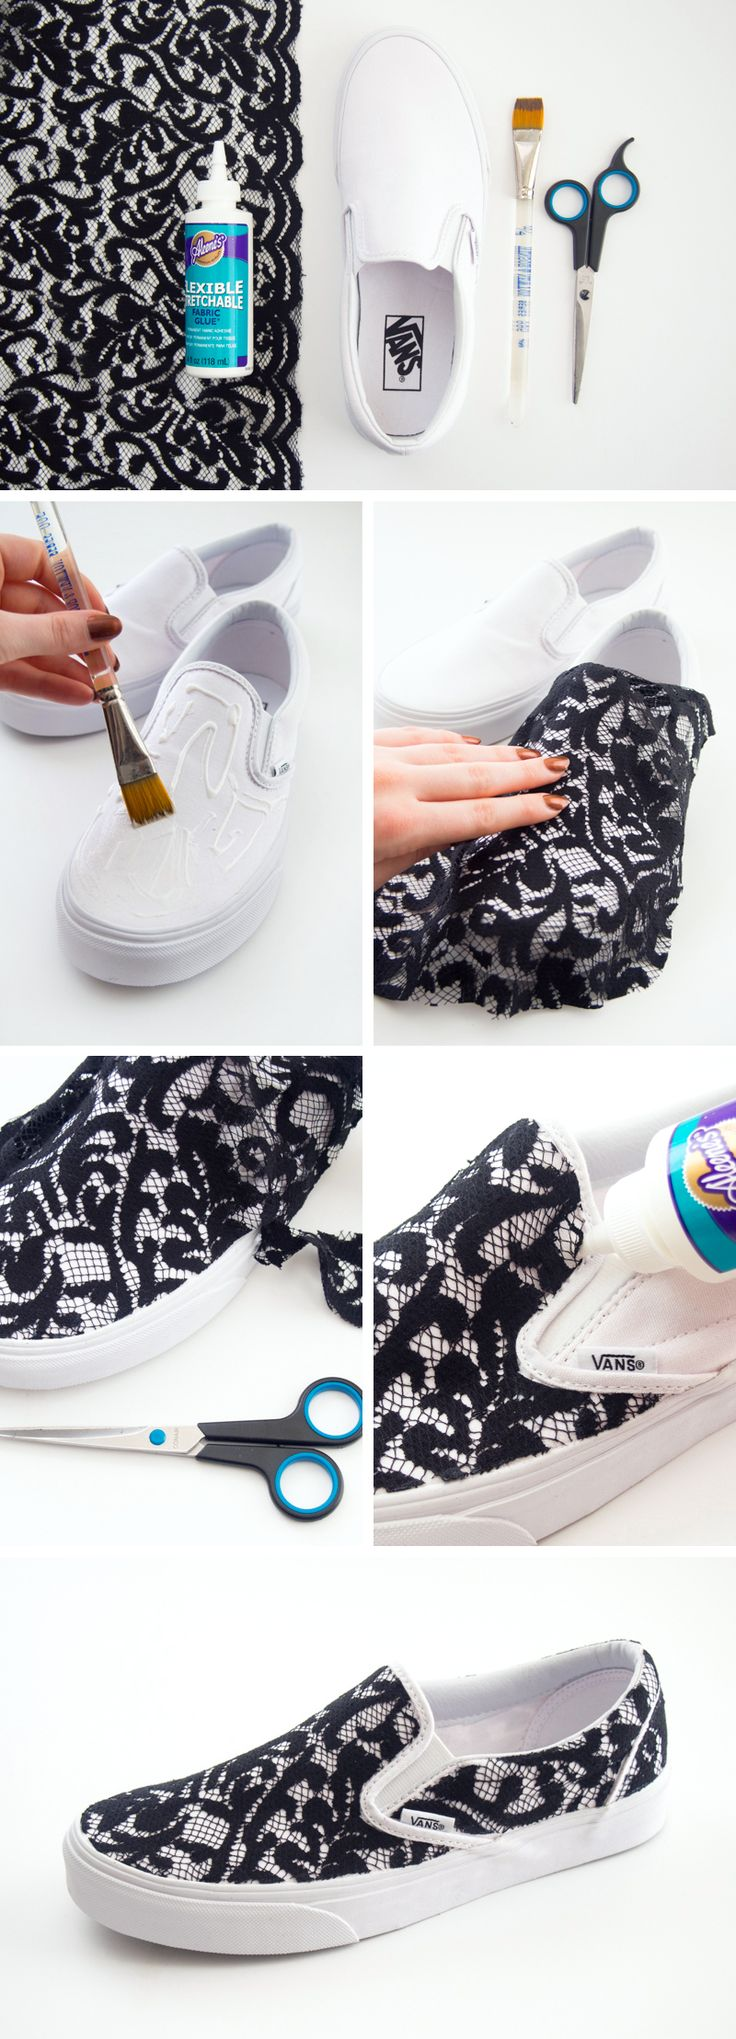 DIY vans shoe refashion with lace